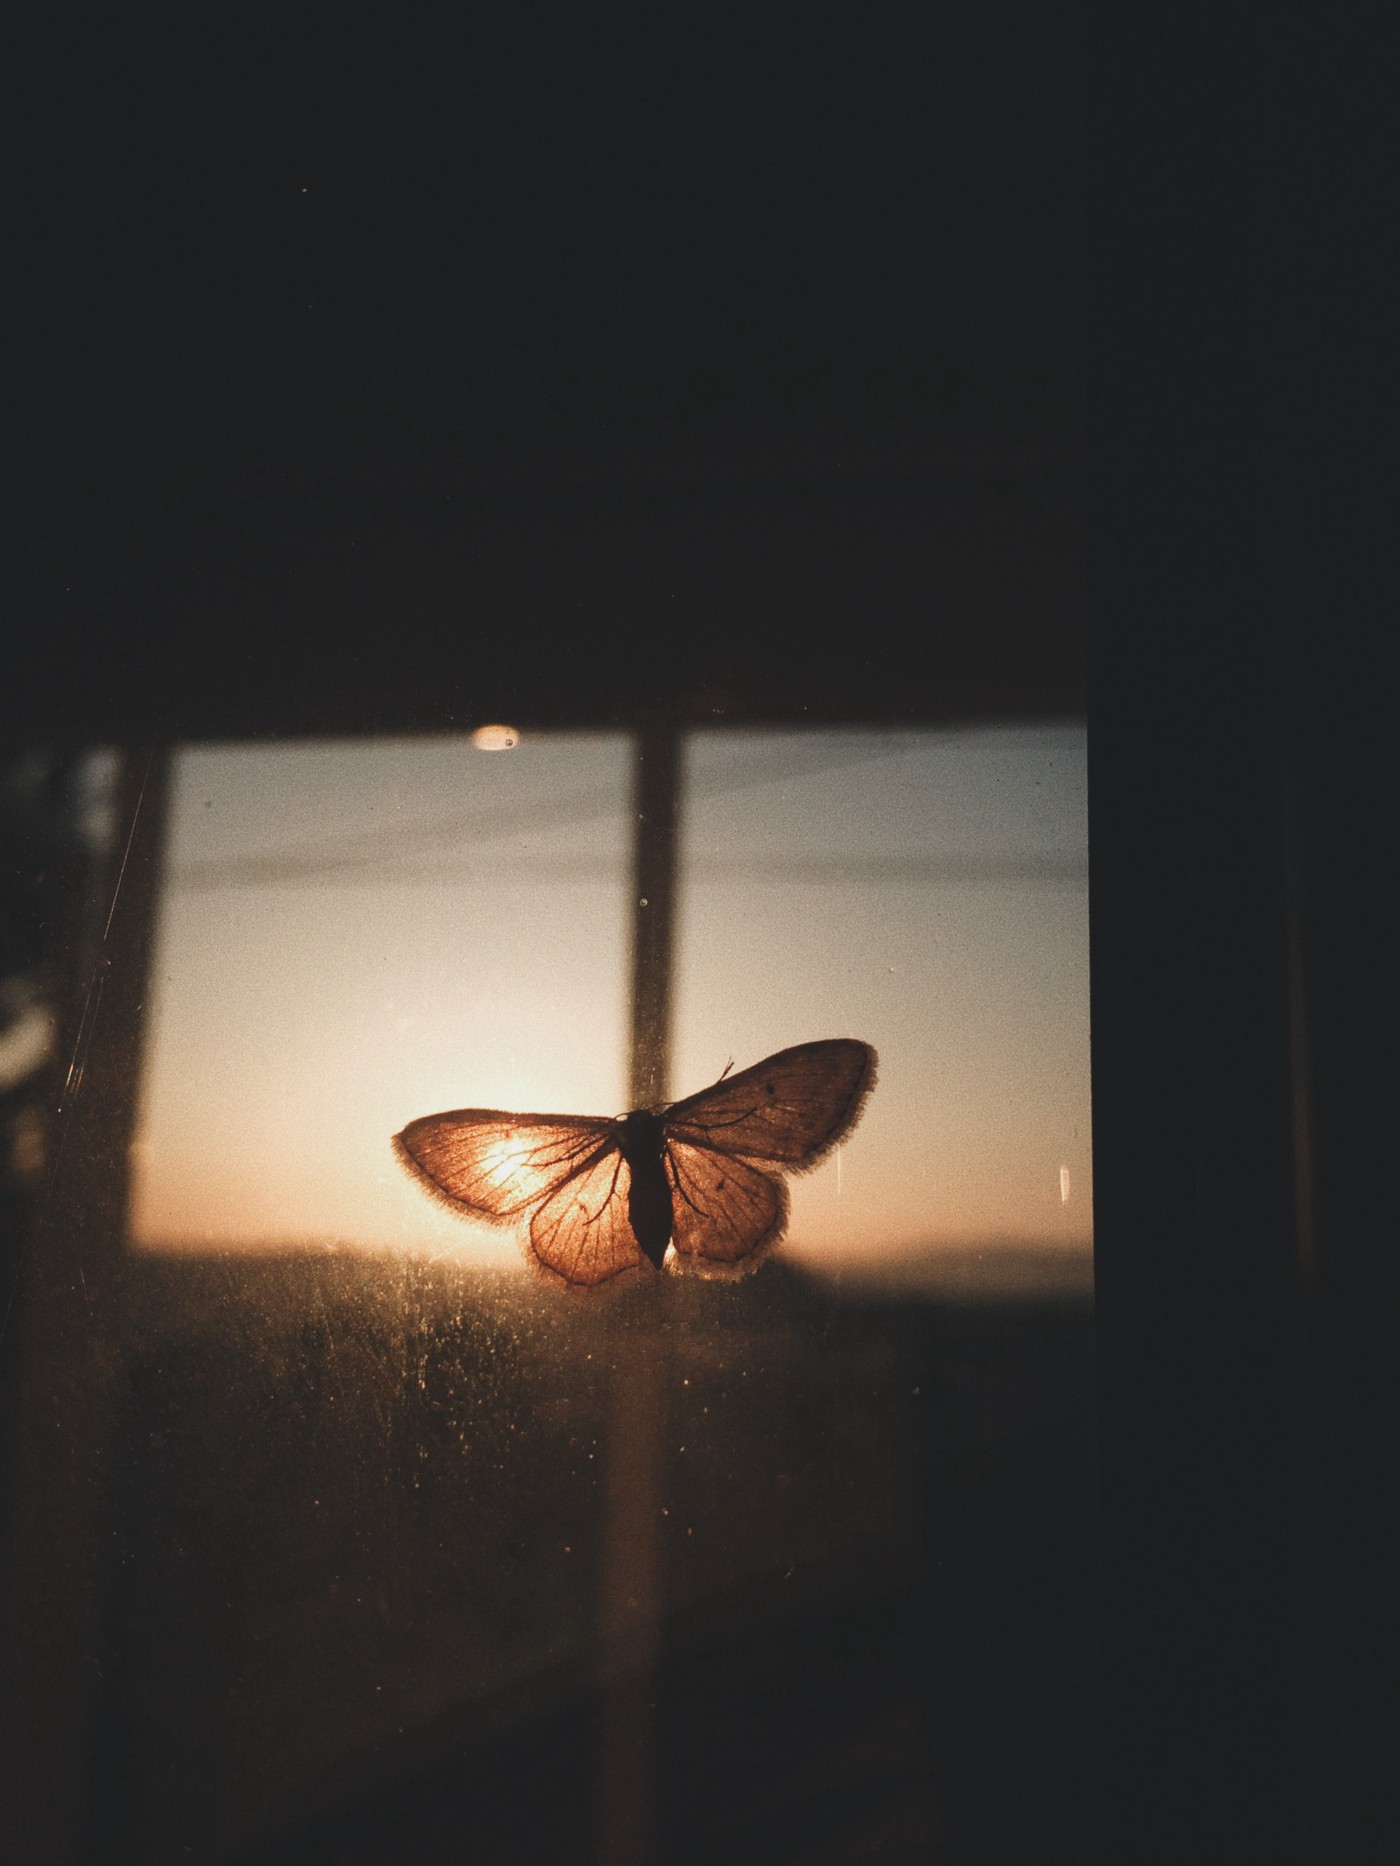 A butterfly got clicked while expanding its wings,